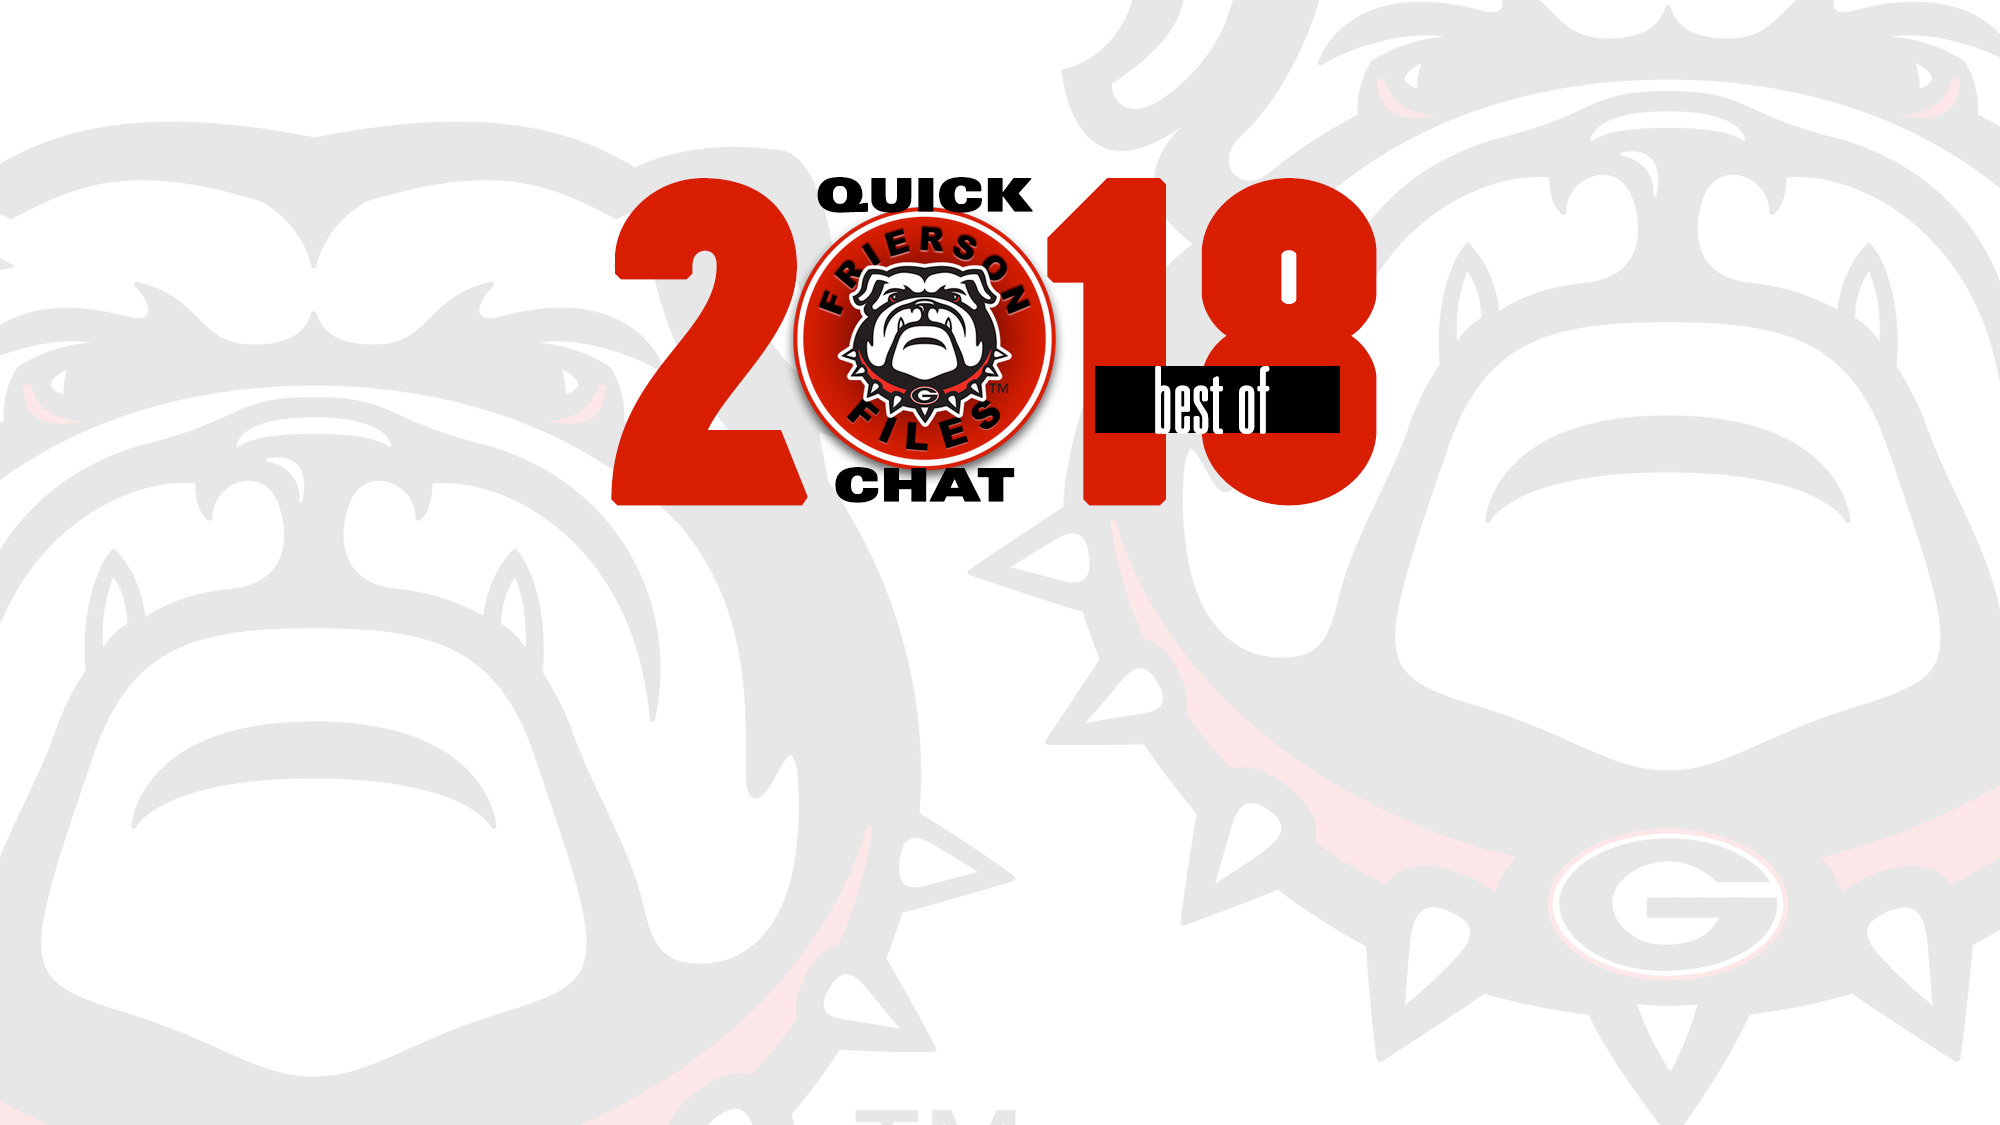 05eee96e5a2 Quick Chat  Best Of 2018 - University of Georgia Athletics